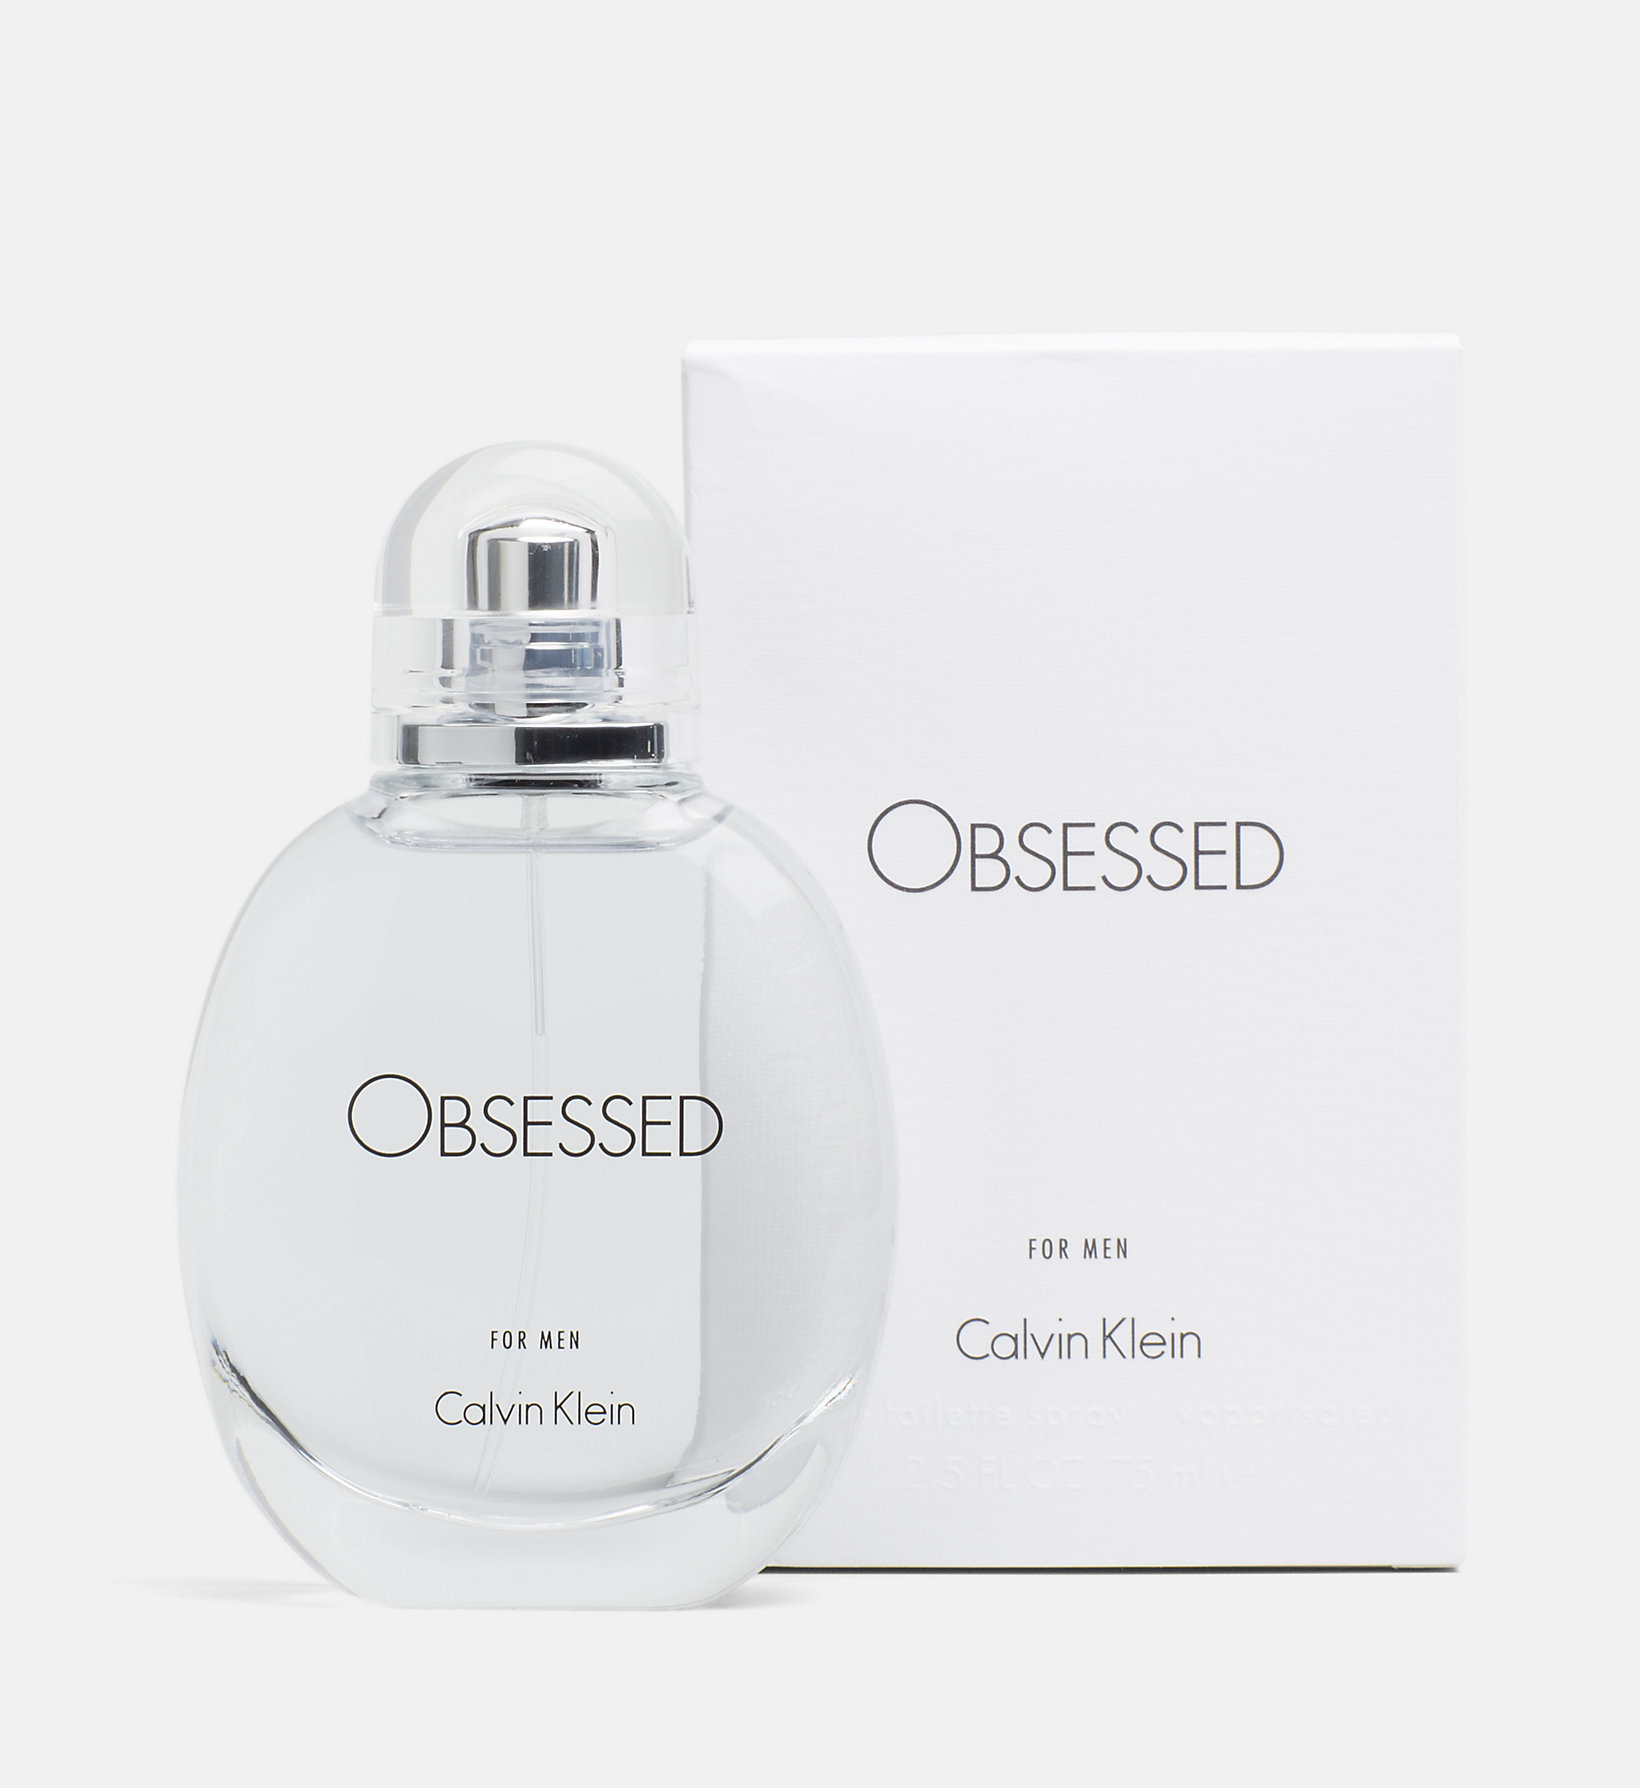 Mens Perfumes Calvin Klein Official Site Parfum Original Beauty For Women Obsessed Men 75ml Eau De Toilette White See Thru